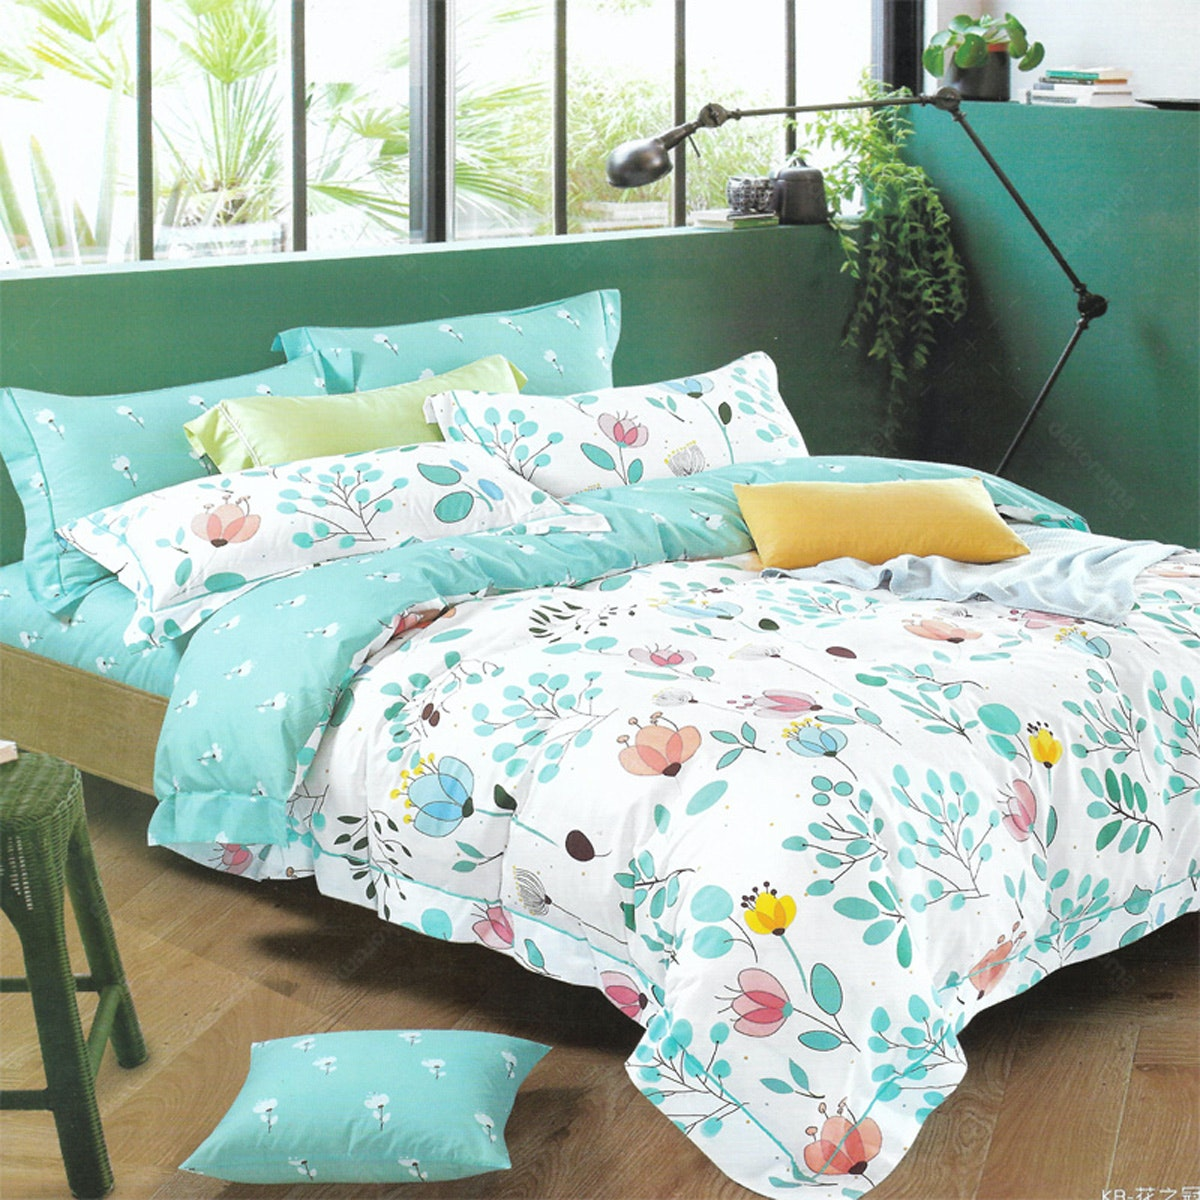 Sleep Buddy Set Sprei Prilly Cotton Sateen 160x200x30